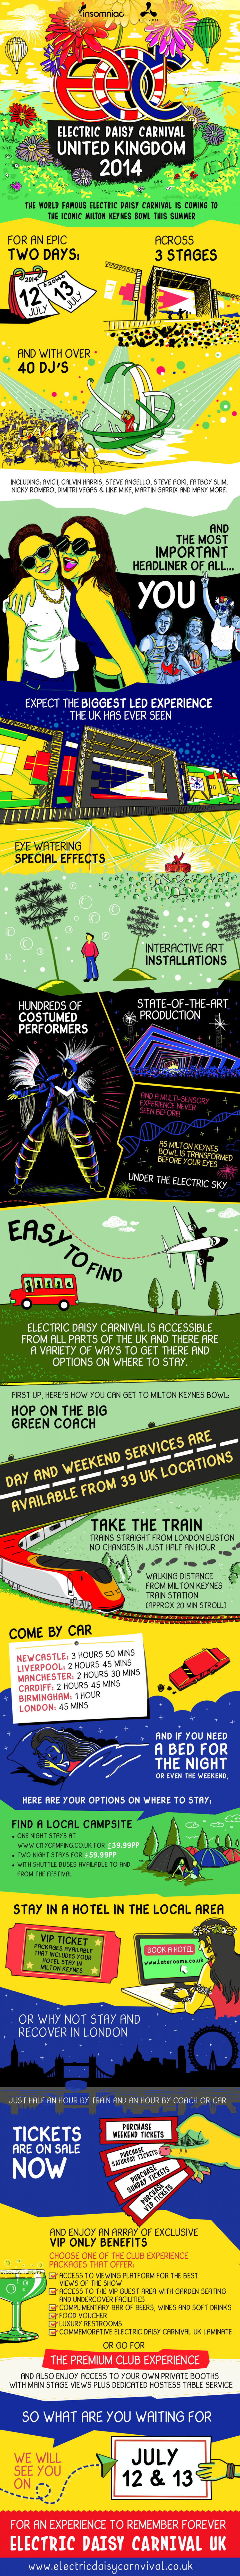 Electric Daisy Carnival UK  Infographic